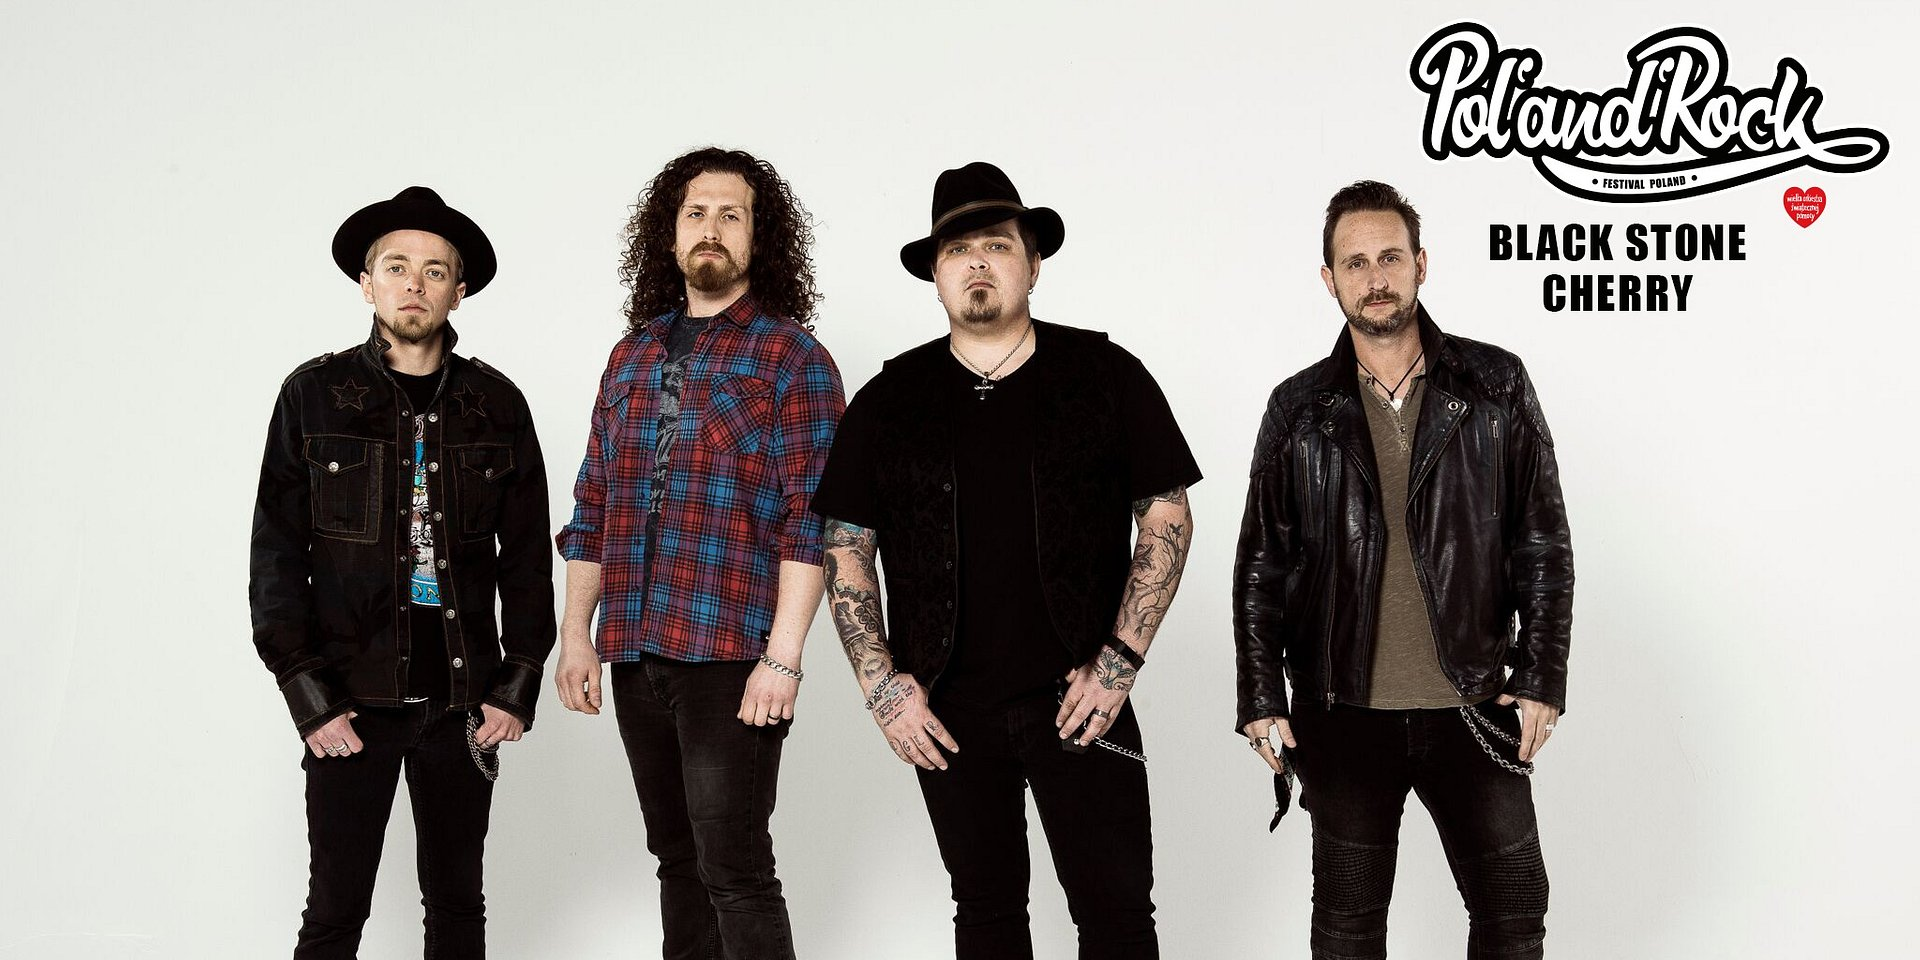 Black Stone Cherry at Pol'and'Rock Festival